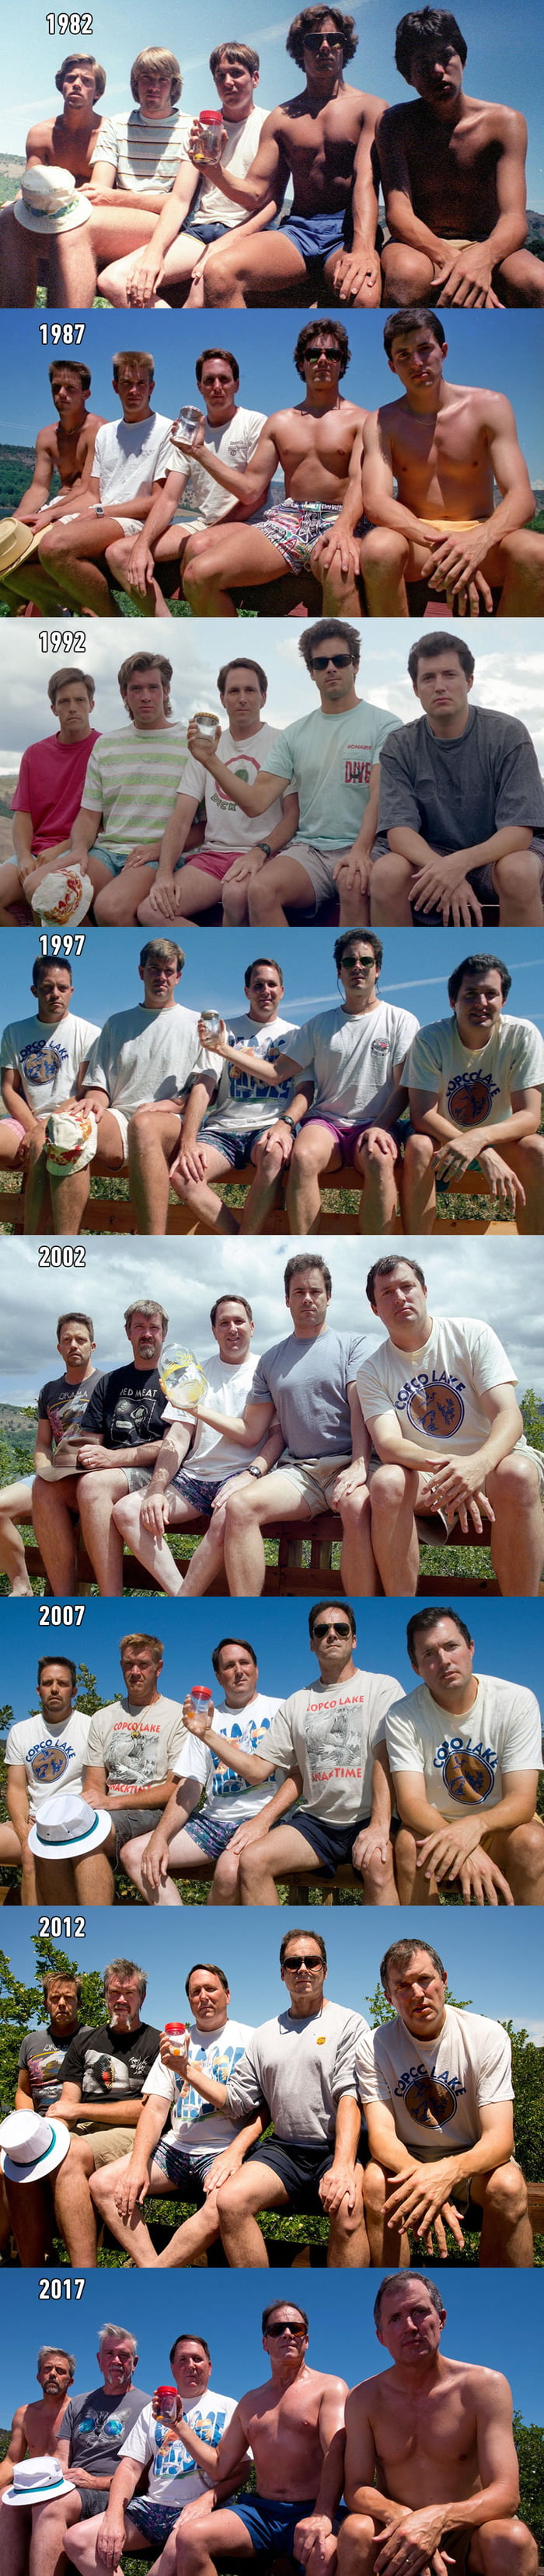 Five high school buddies take the same photo for 35 years... friends for lifetime